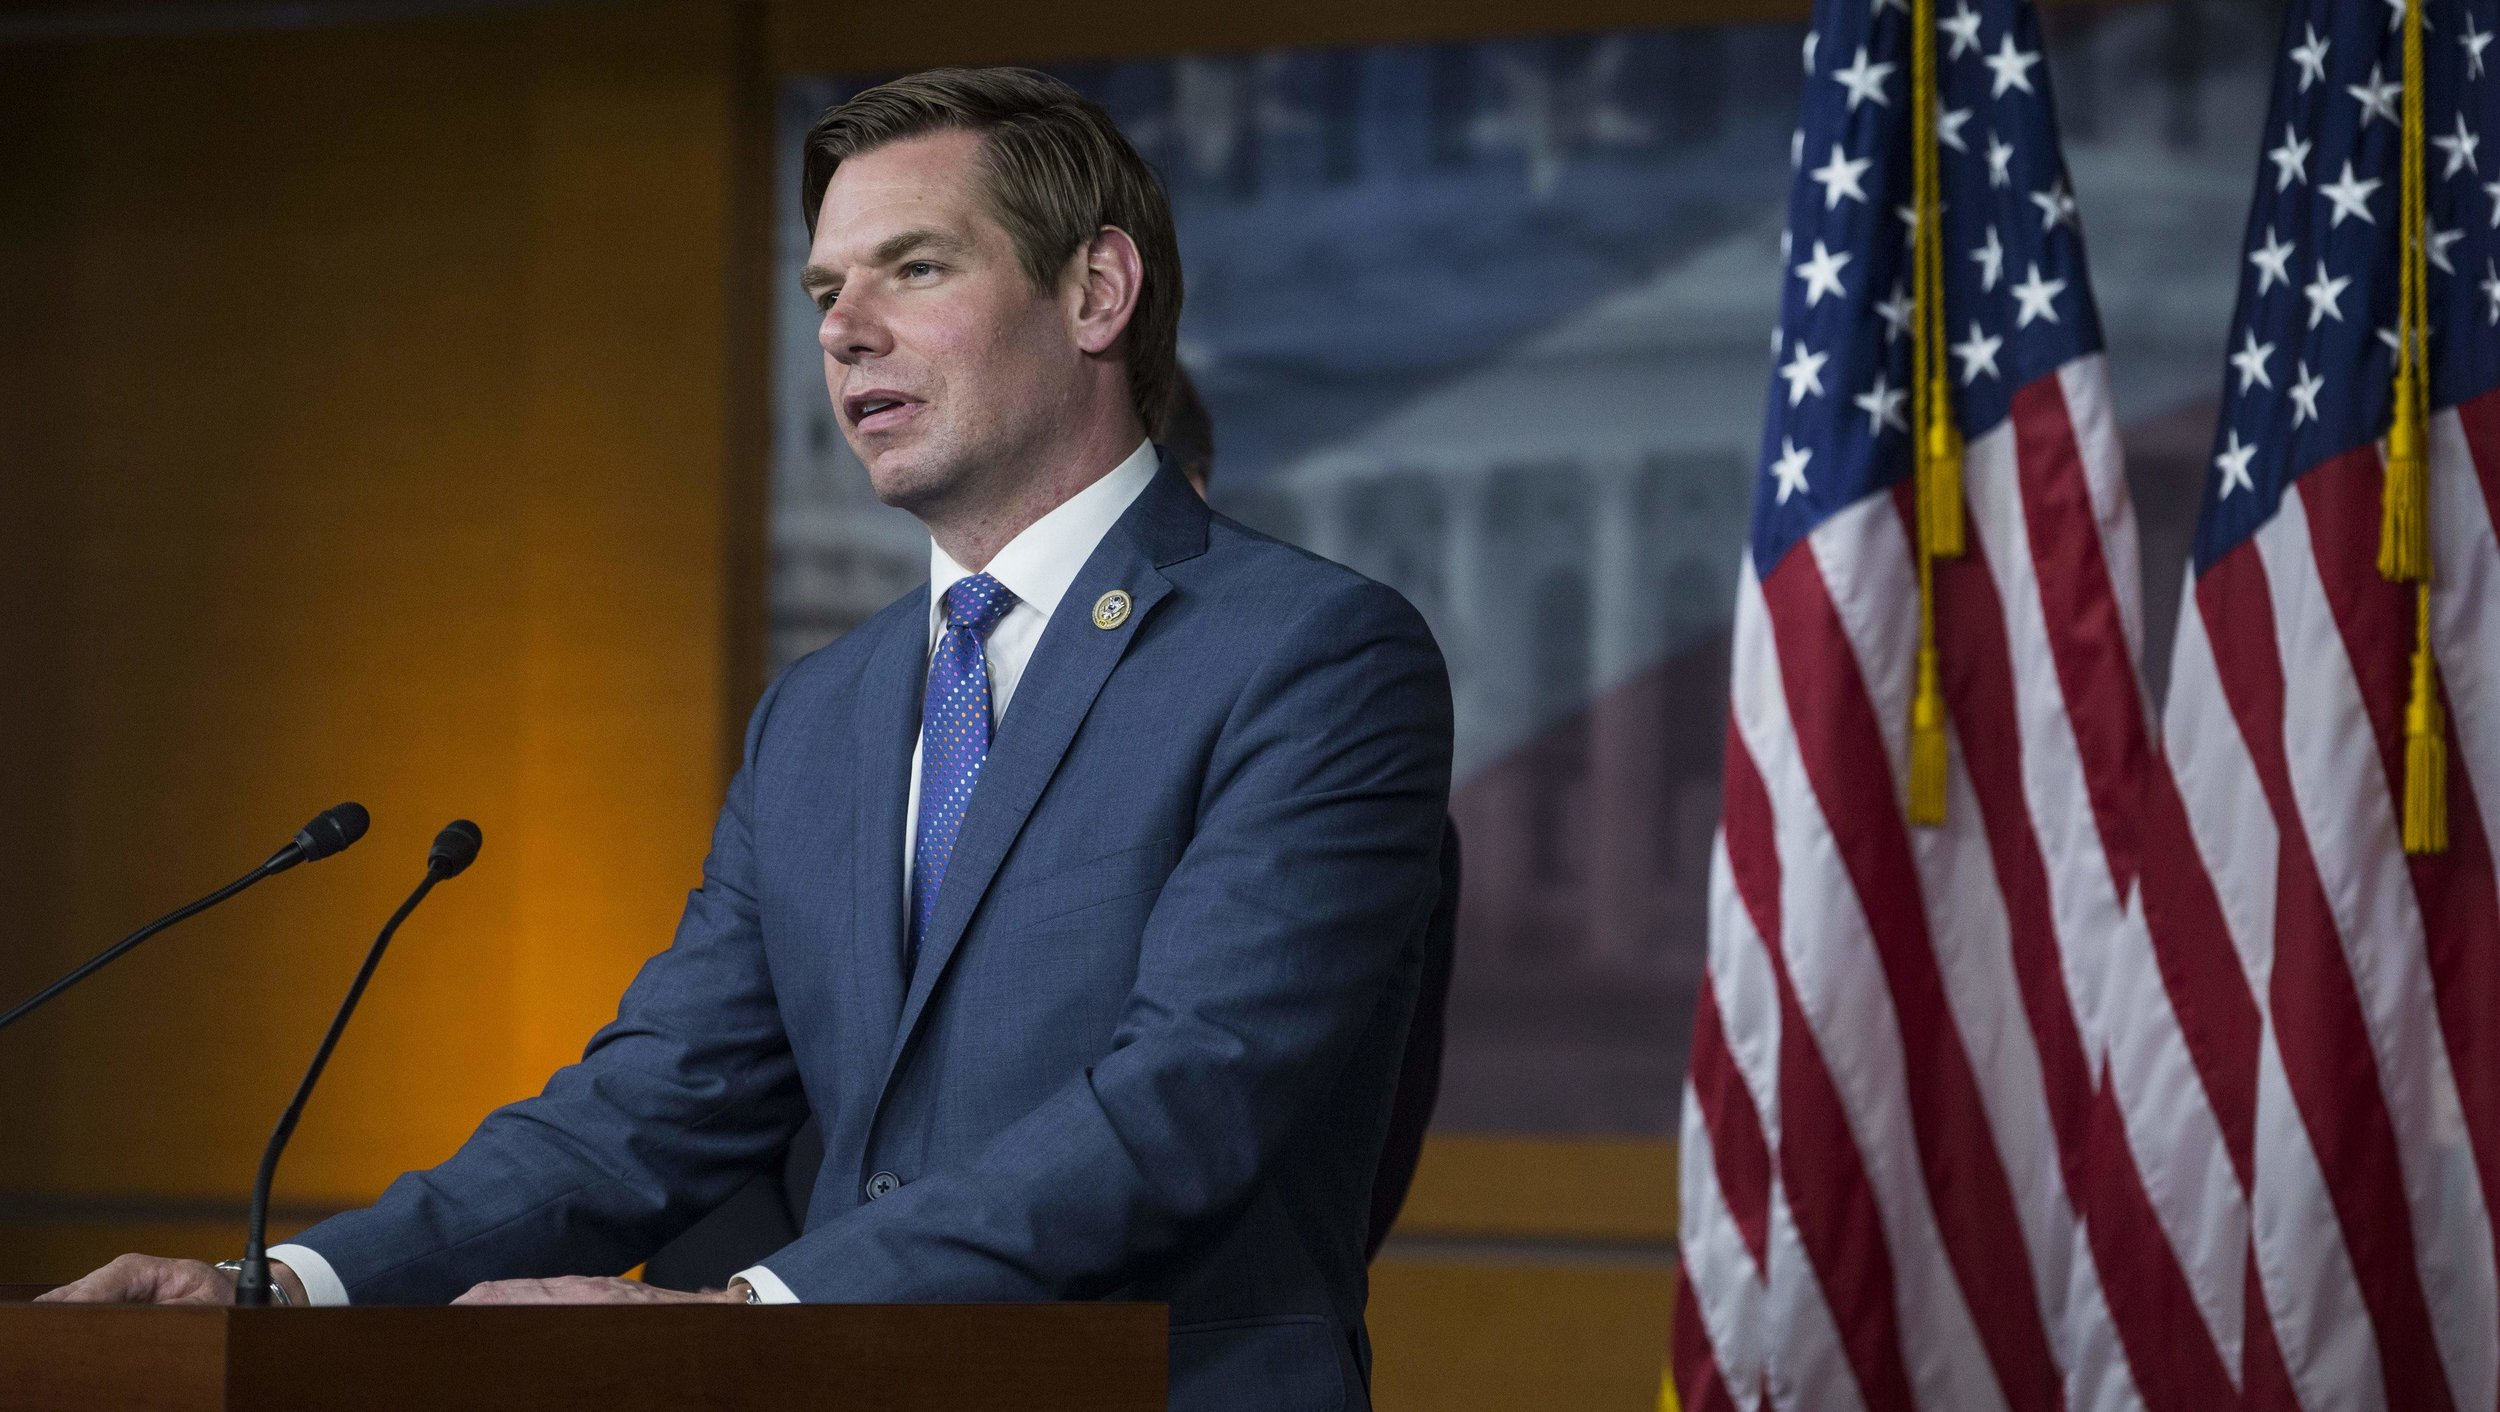 eric-swalwell-2020-election-e1541706083599.jpg